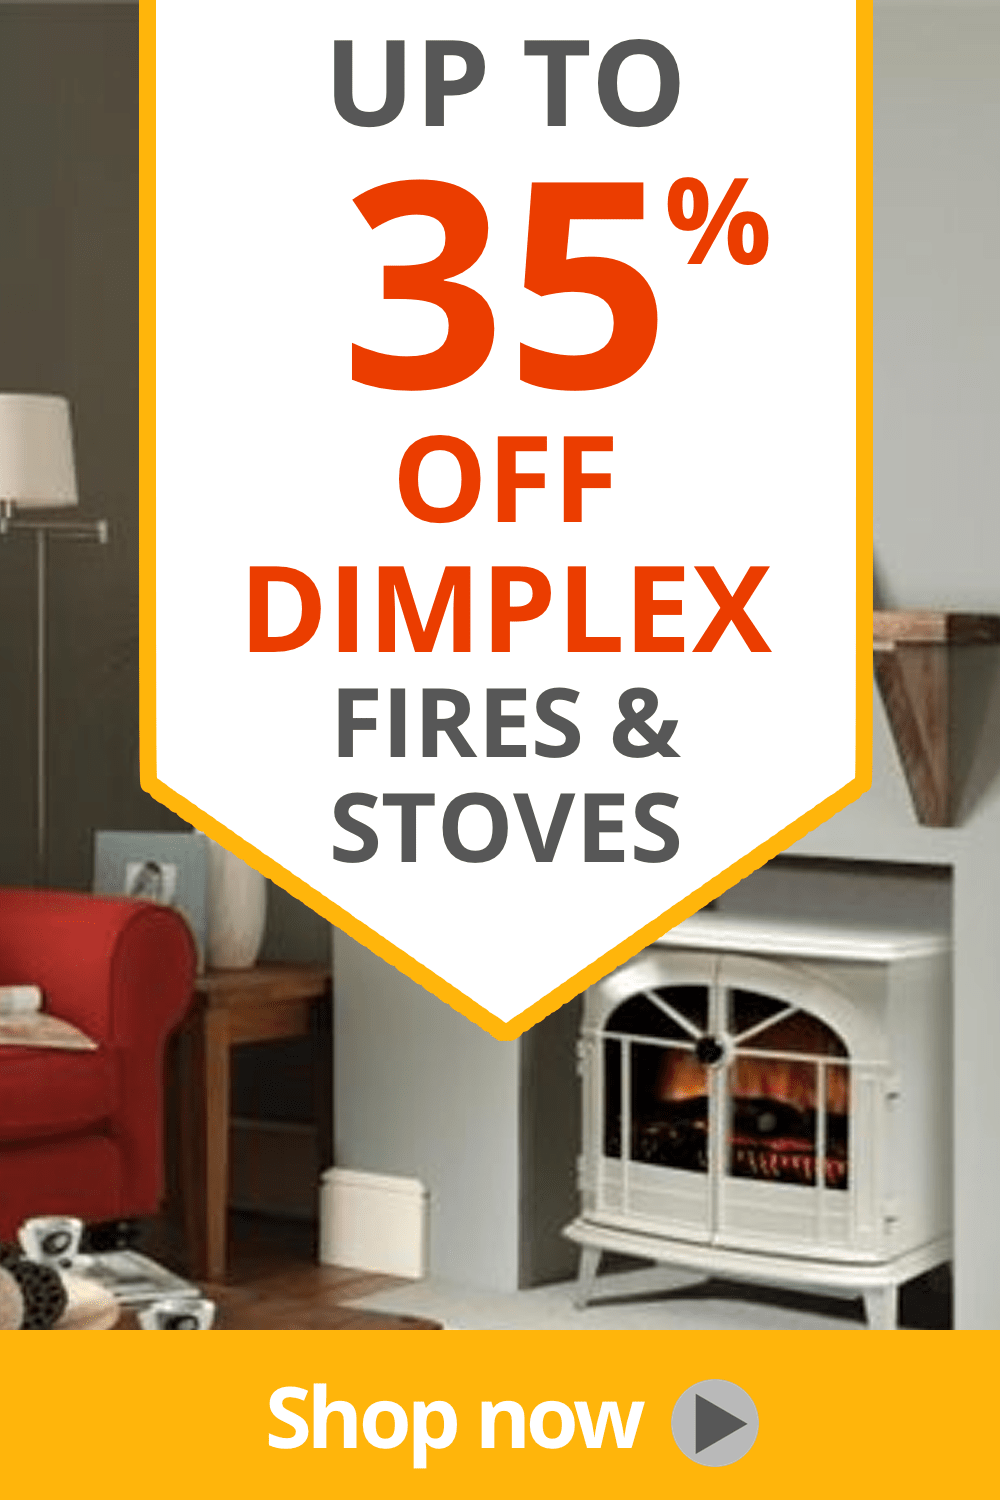 Up to 35% Off DImplex